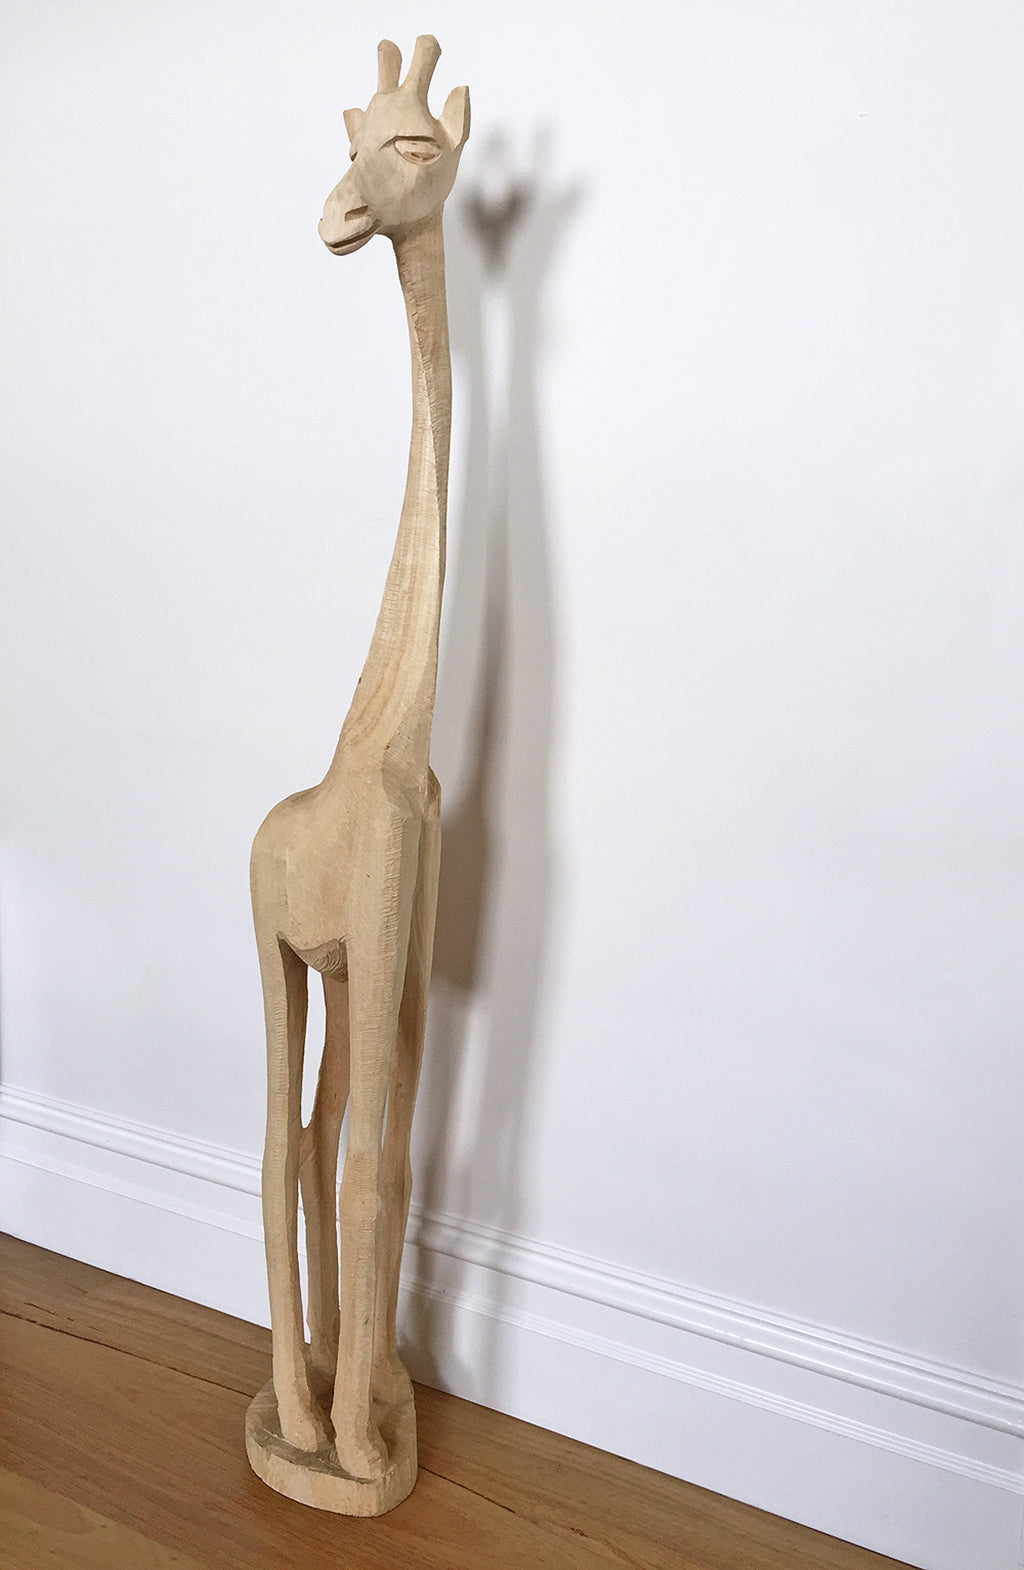 Animal instincts / giraffe | Swazi Giraffe, a chainsaw Jacaranda wood carving from Eswatini [Swaziland]